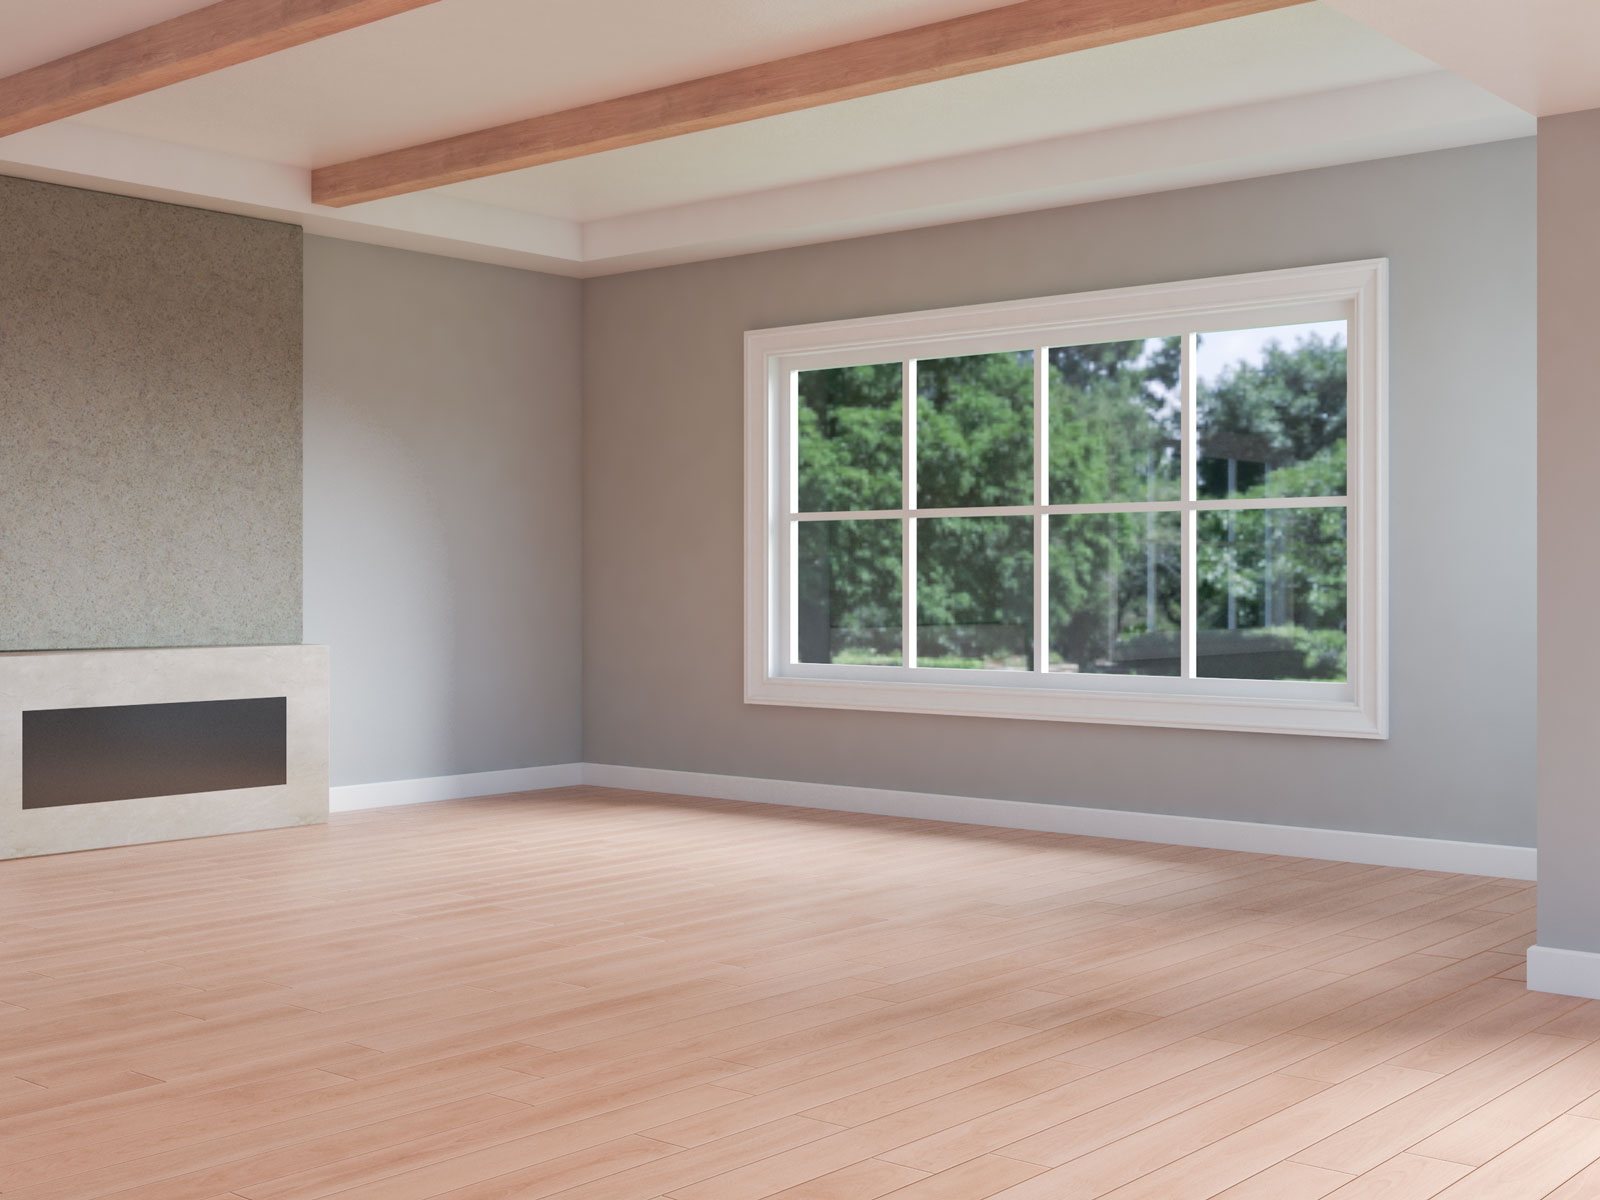 Harbour gray walls with red oak wood flooring